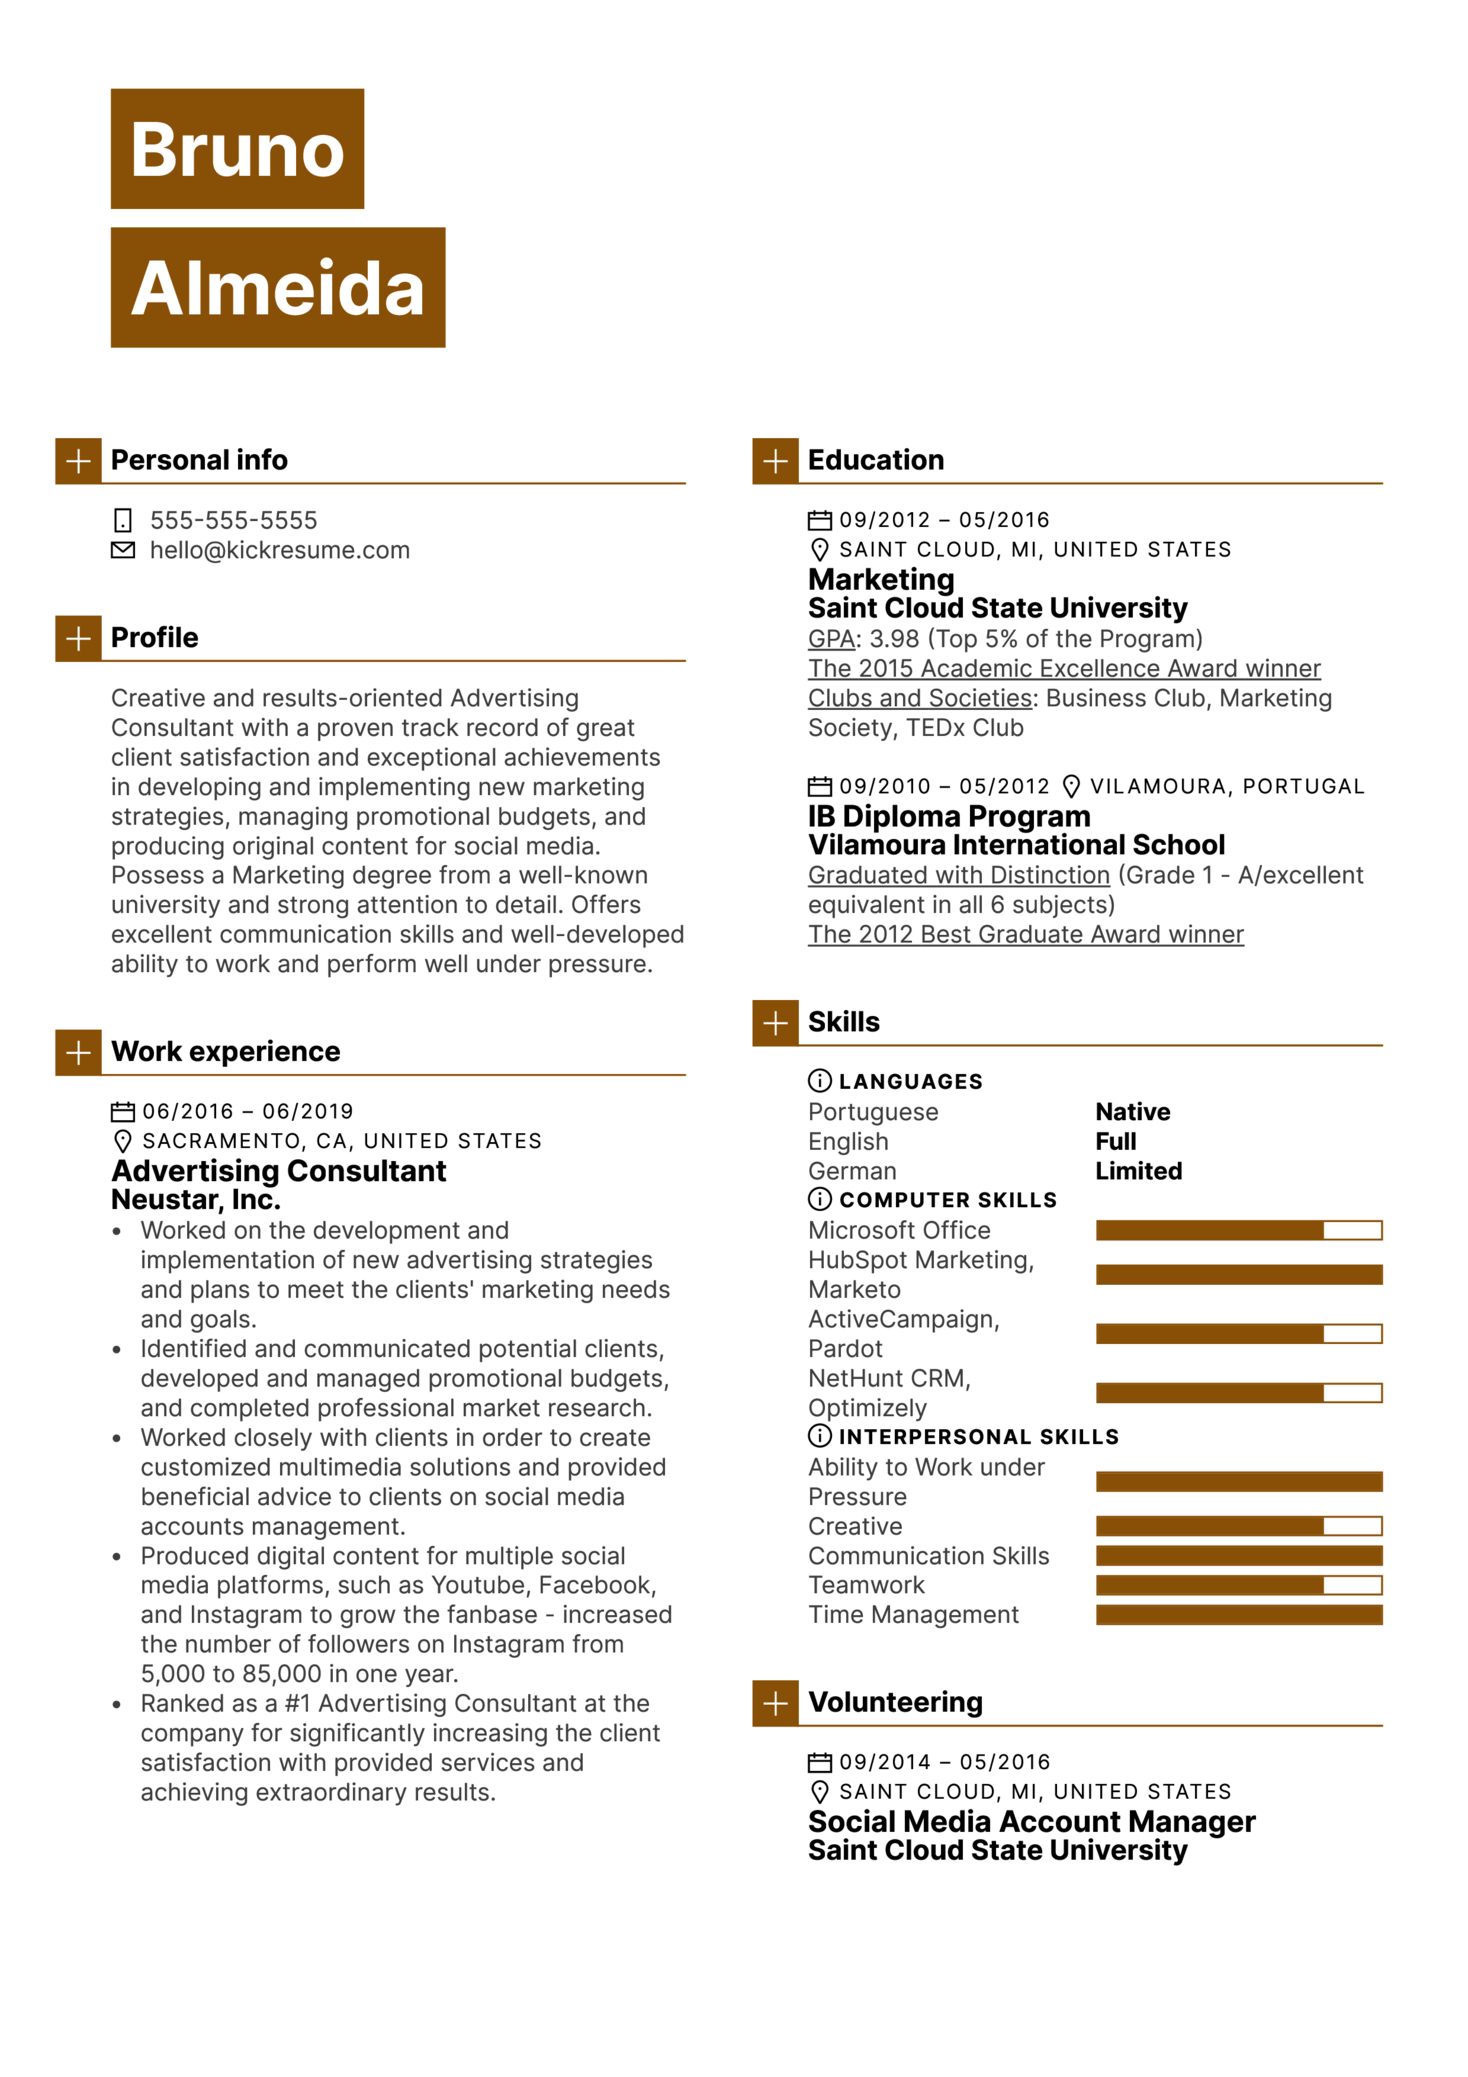 Advertising Consultant Resume Example (Teil 1)